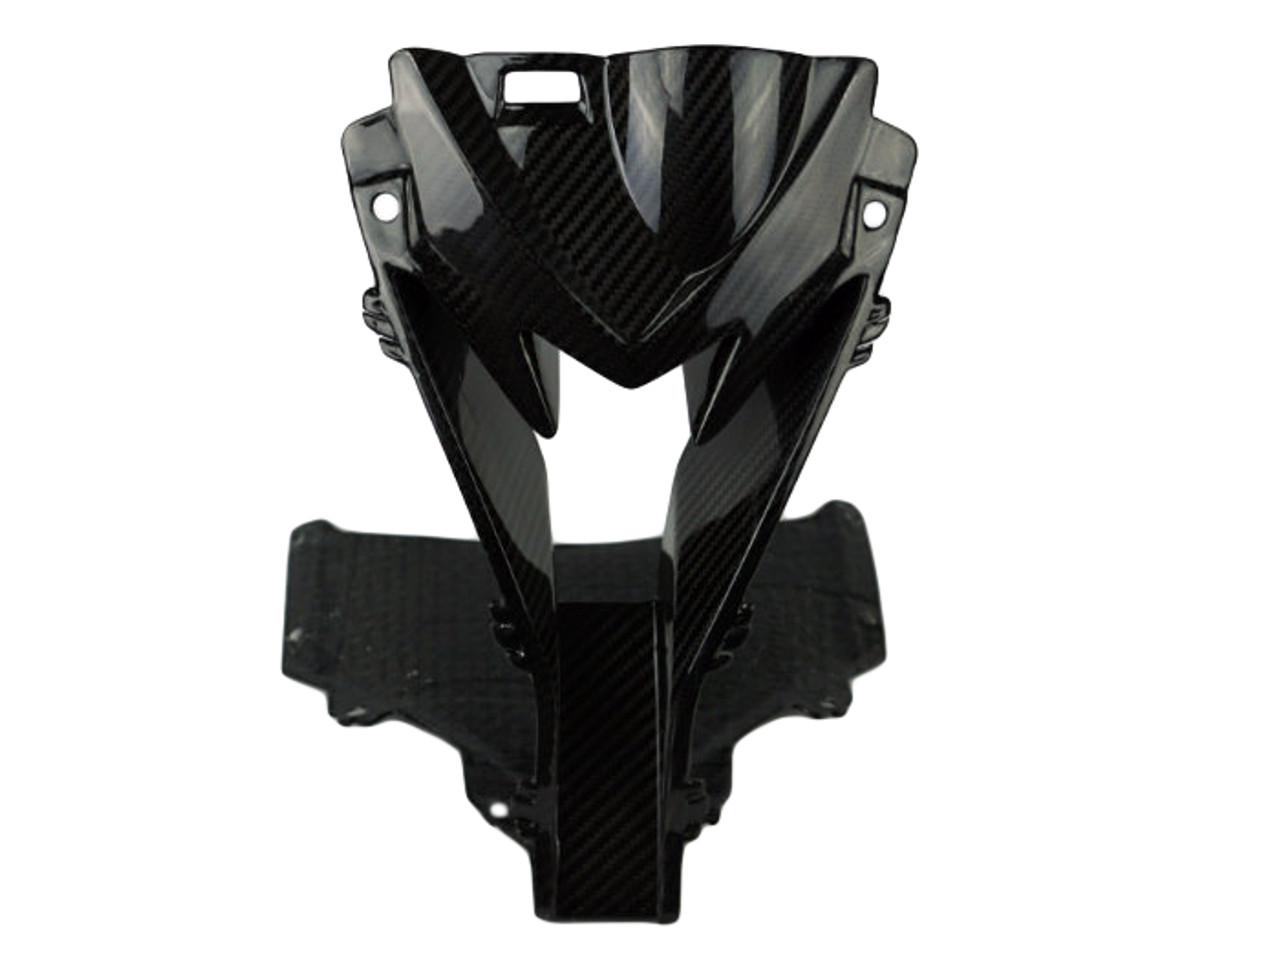 Upper Fairing Stay Bracket in Twill Glossy Weave Carbon Fiber for BMW S1000RR 2015-2018